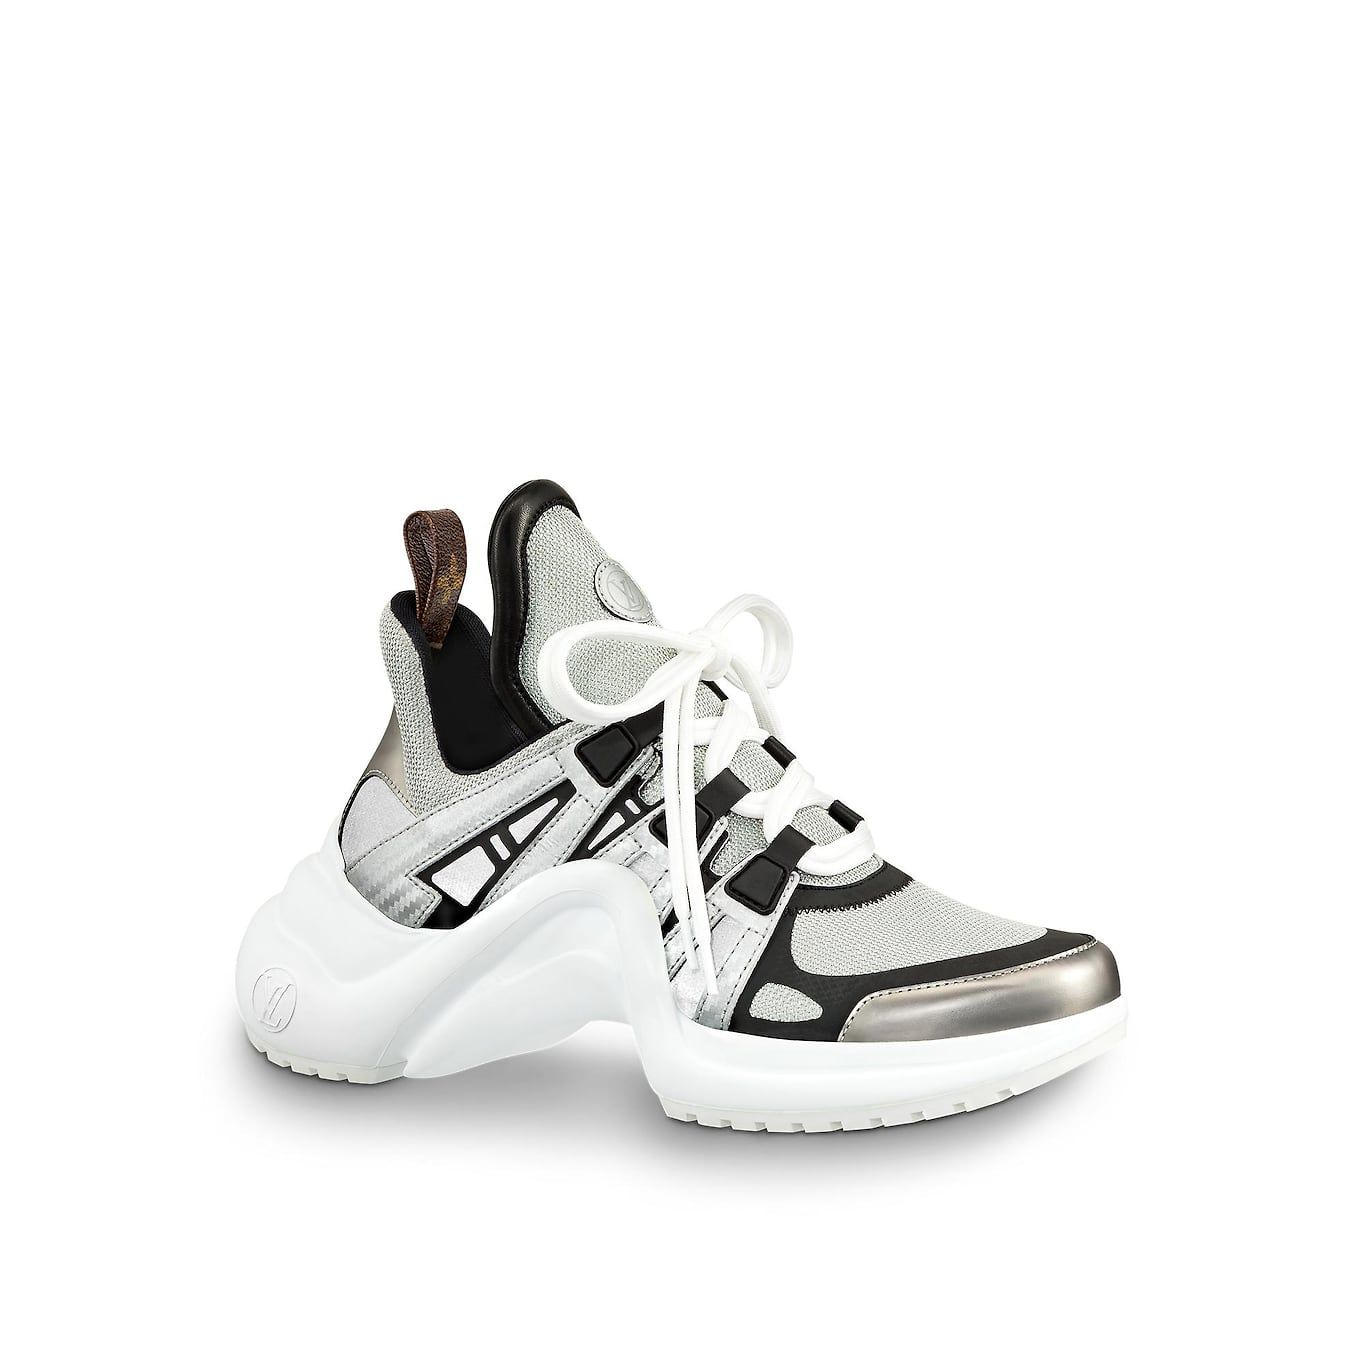 Louis Vuitton Archlight Sneakers Sneakers Lv Sneakers Sneaker Boots